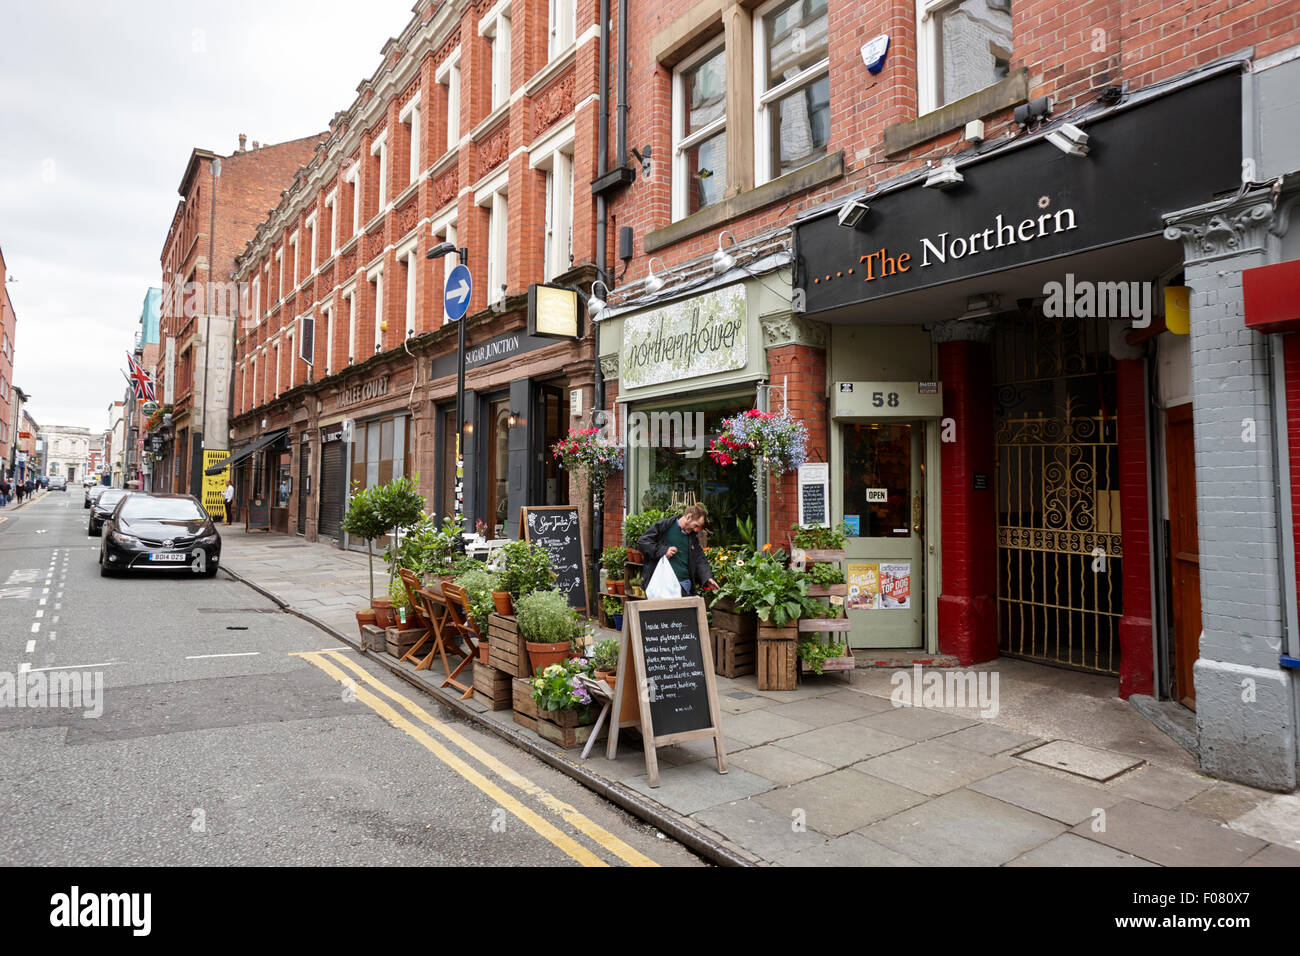 tib street shops in the Northern quarter Manchester uk - Stock Image